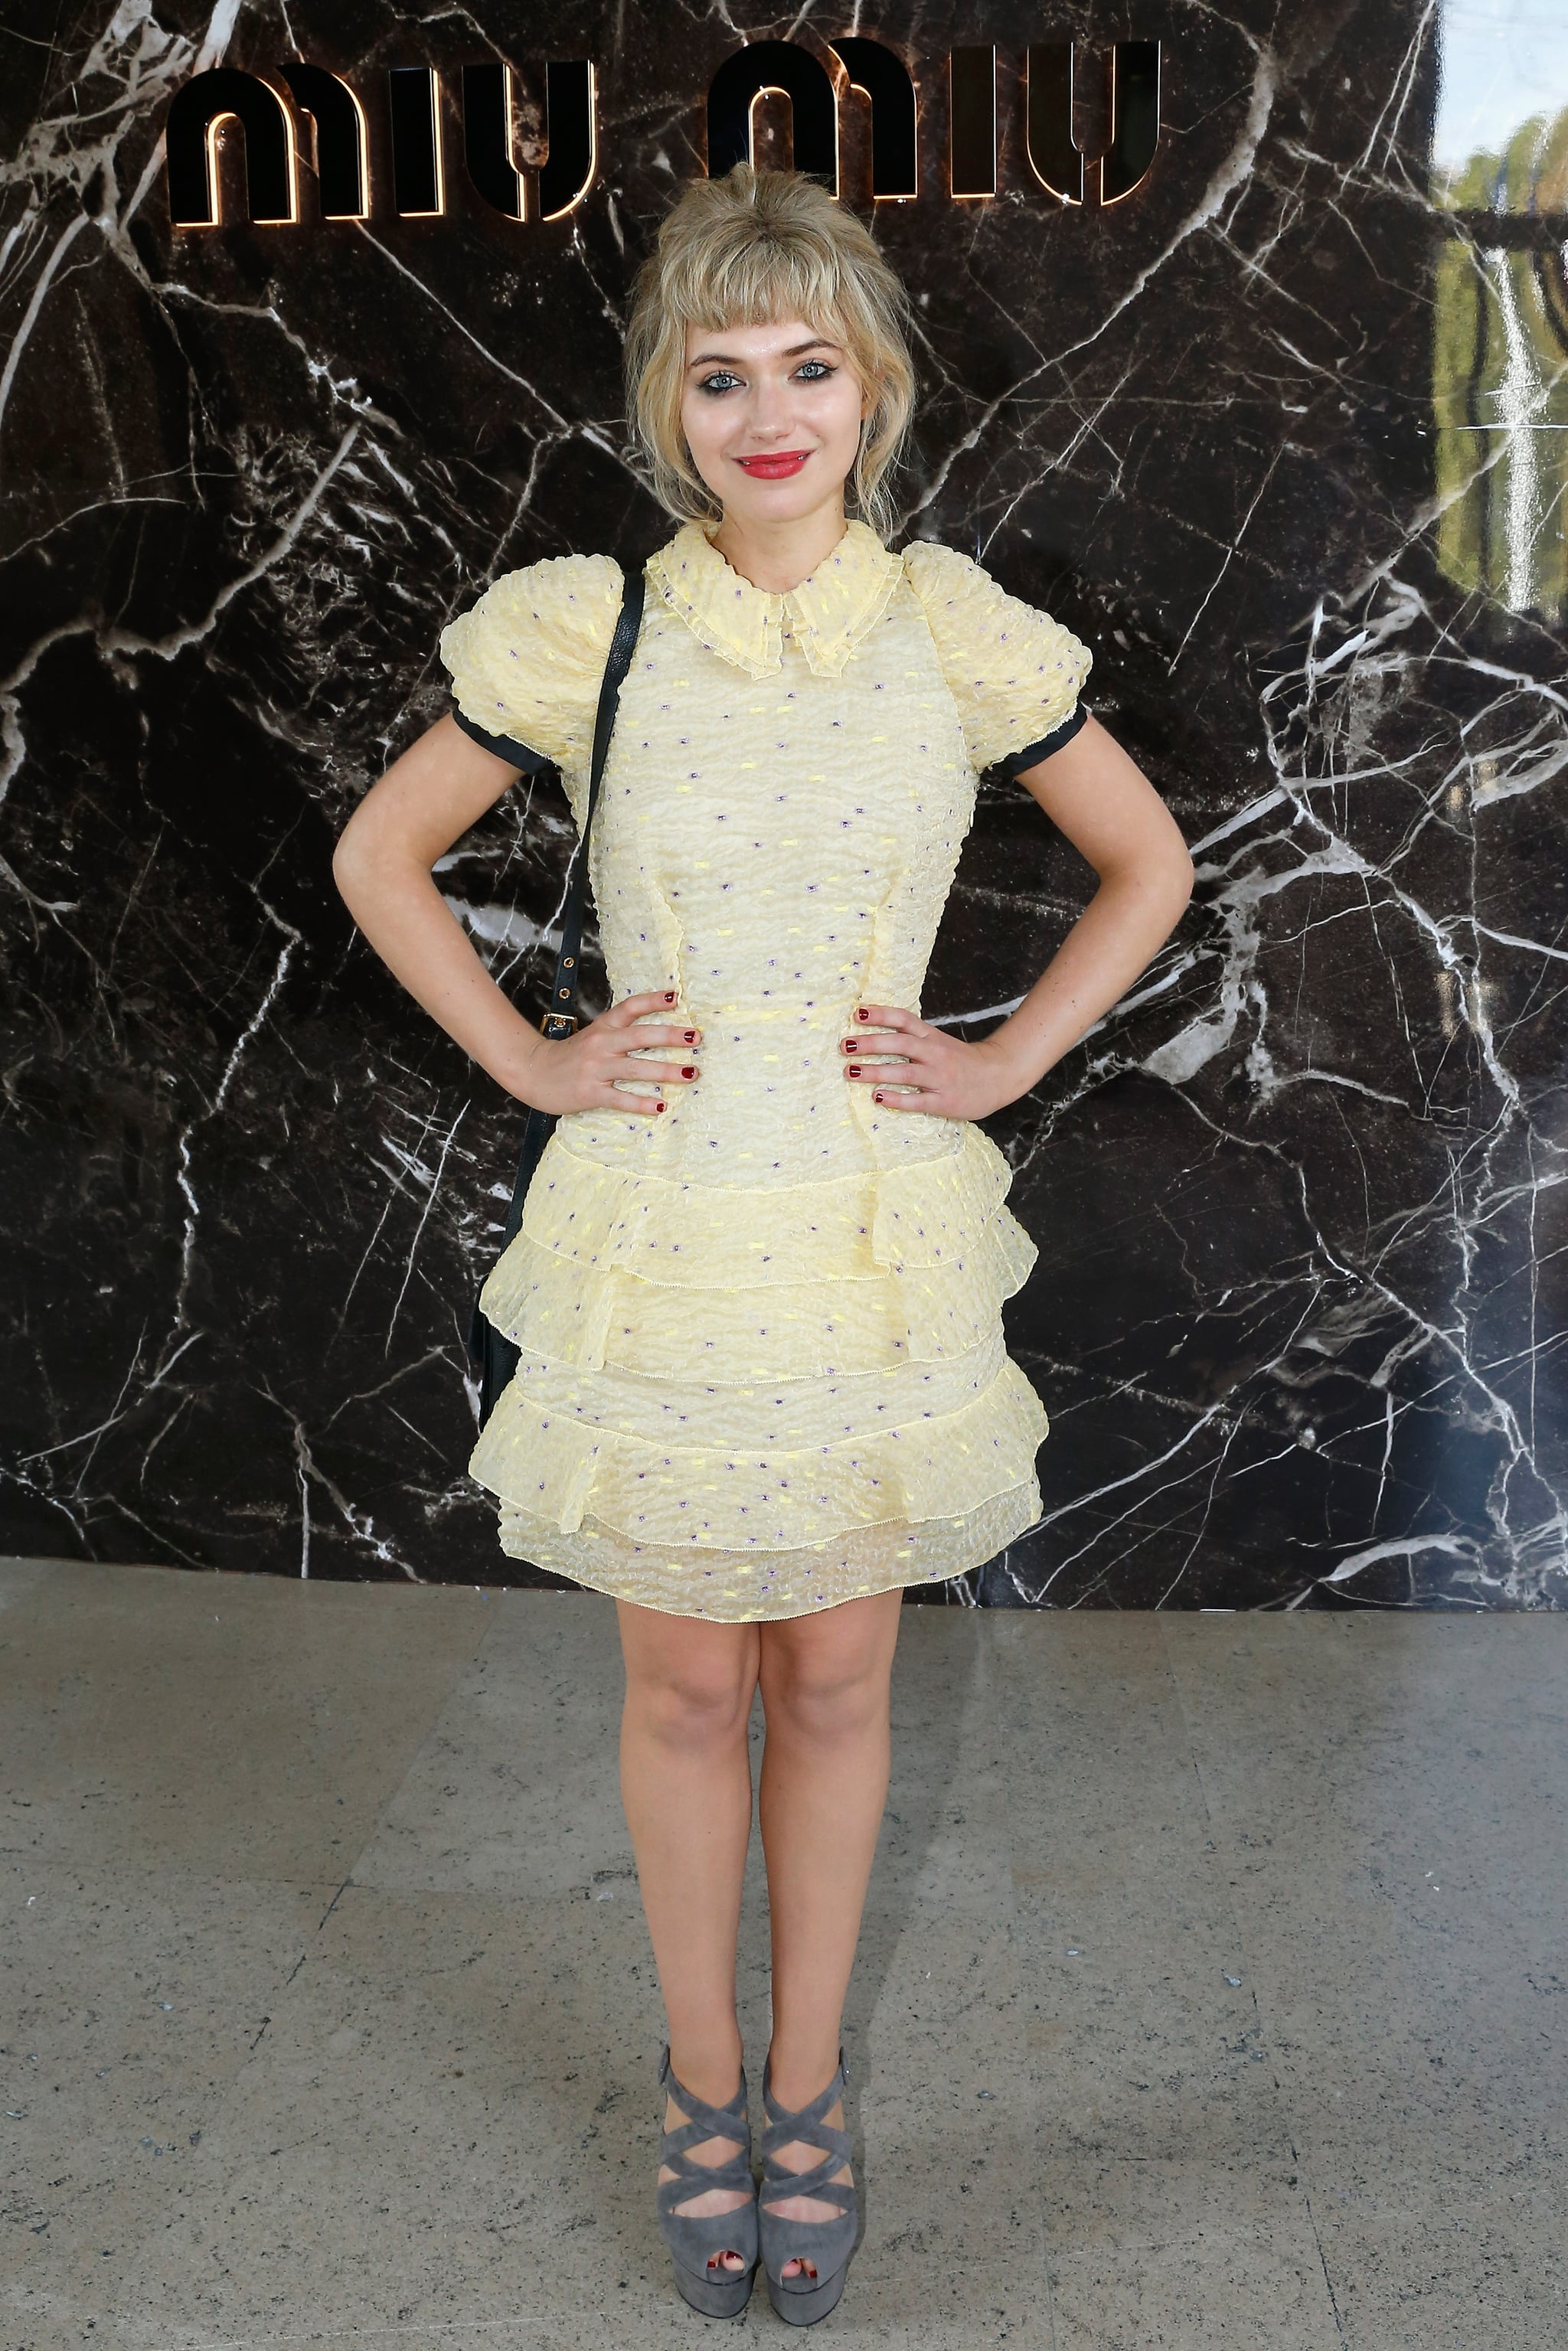 Sitting front row at Miu Miu, Imogen proved she can wear the label's most frilly, youthful creations with ease.